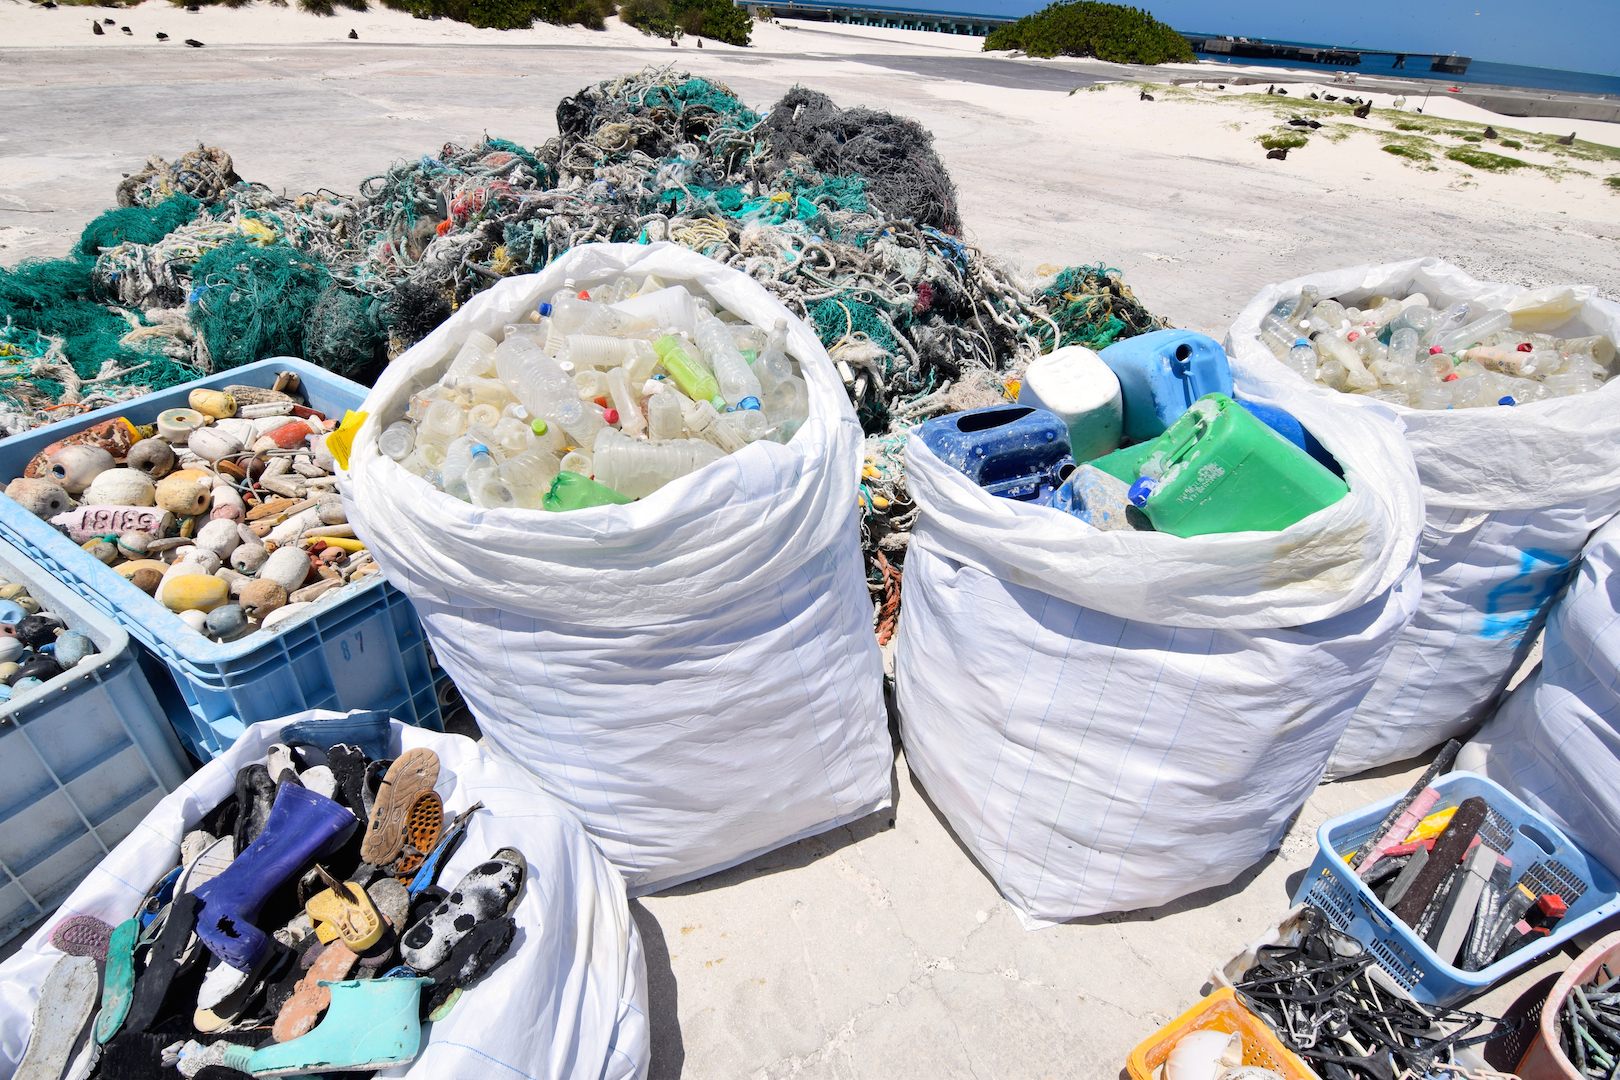 Midway, Atoll, Island, Northwestern, Hawaiian, beach, clean up, marine, debris, plastic, nets, floats, fishing, removal, bottles, shoes, hangers,